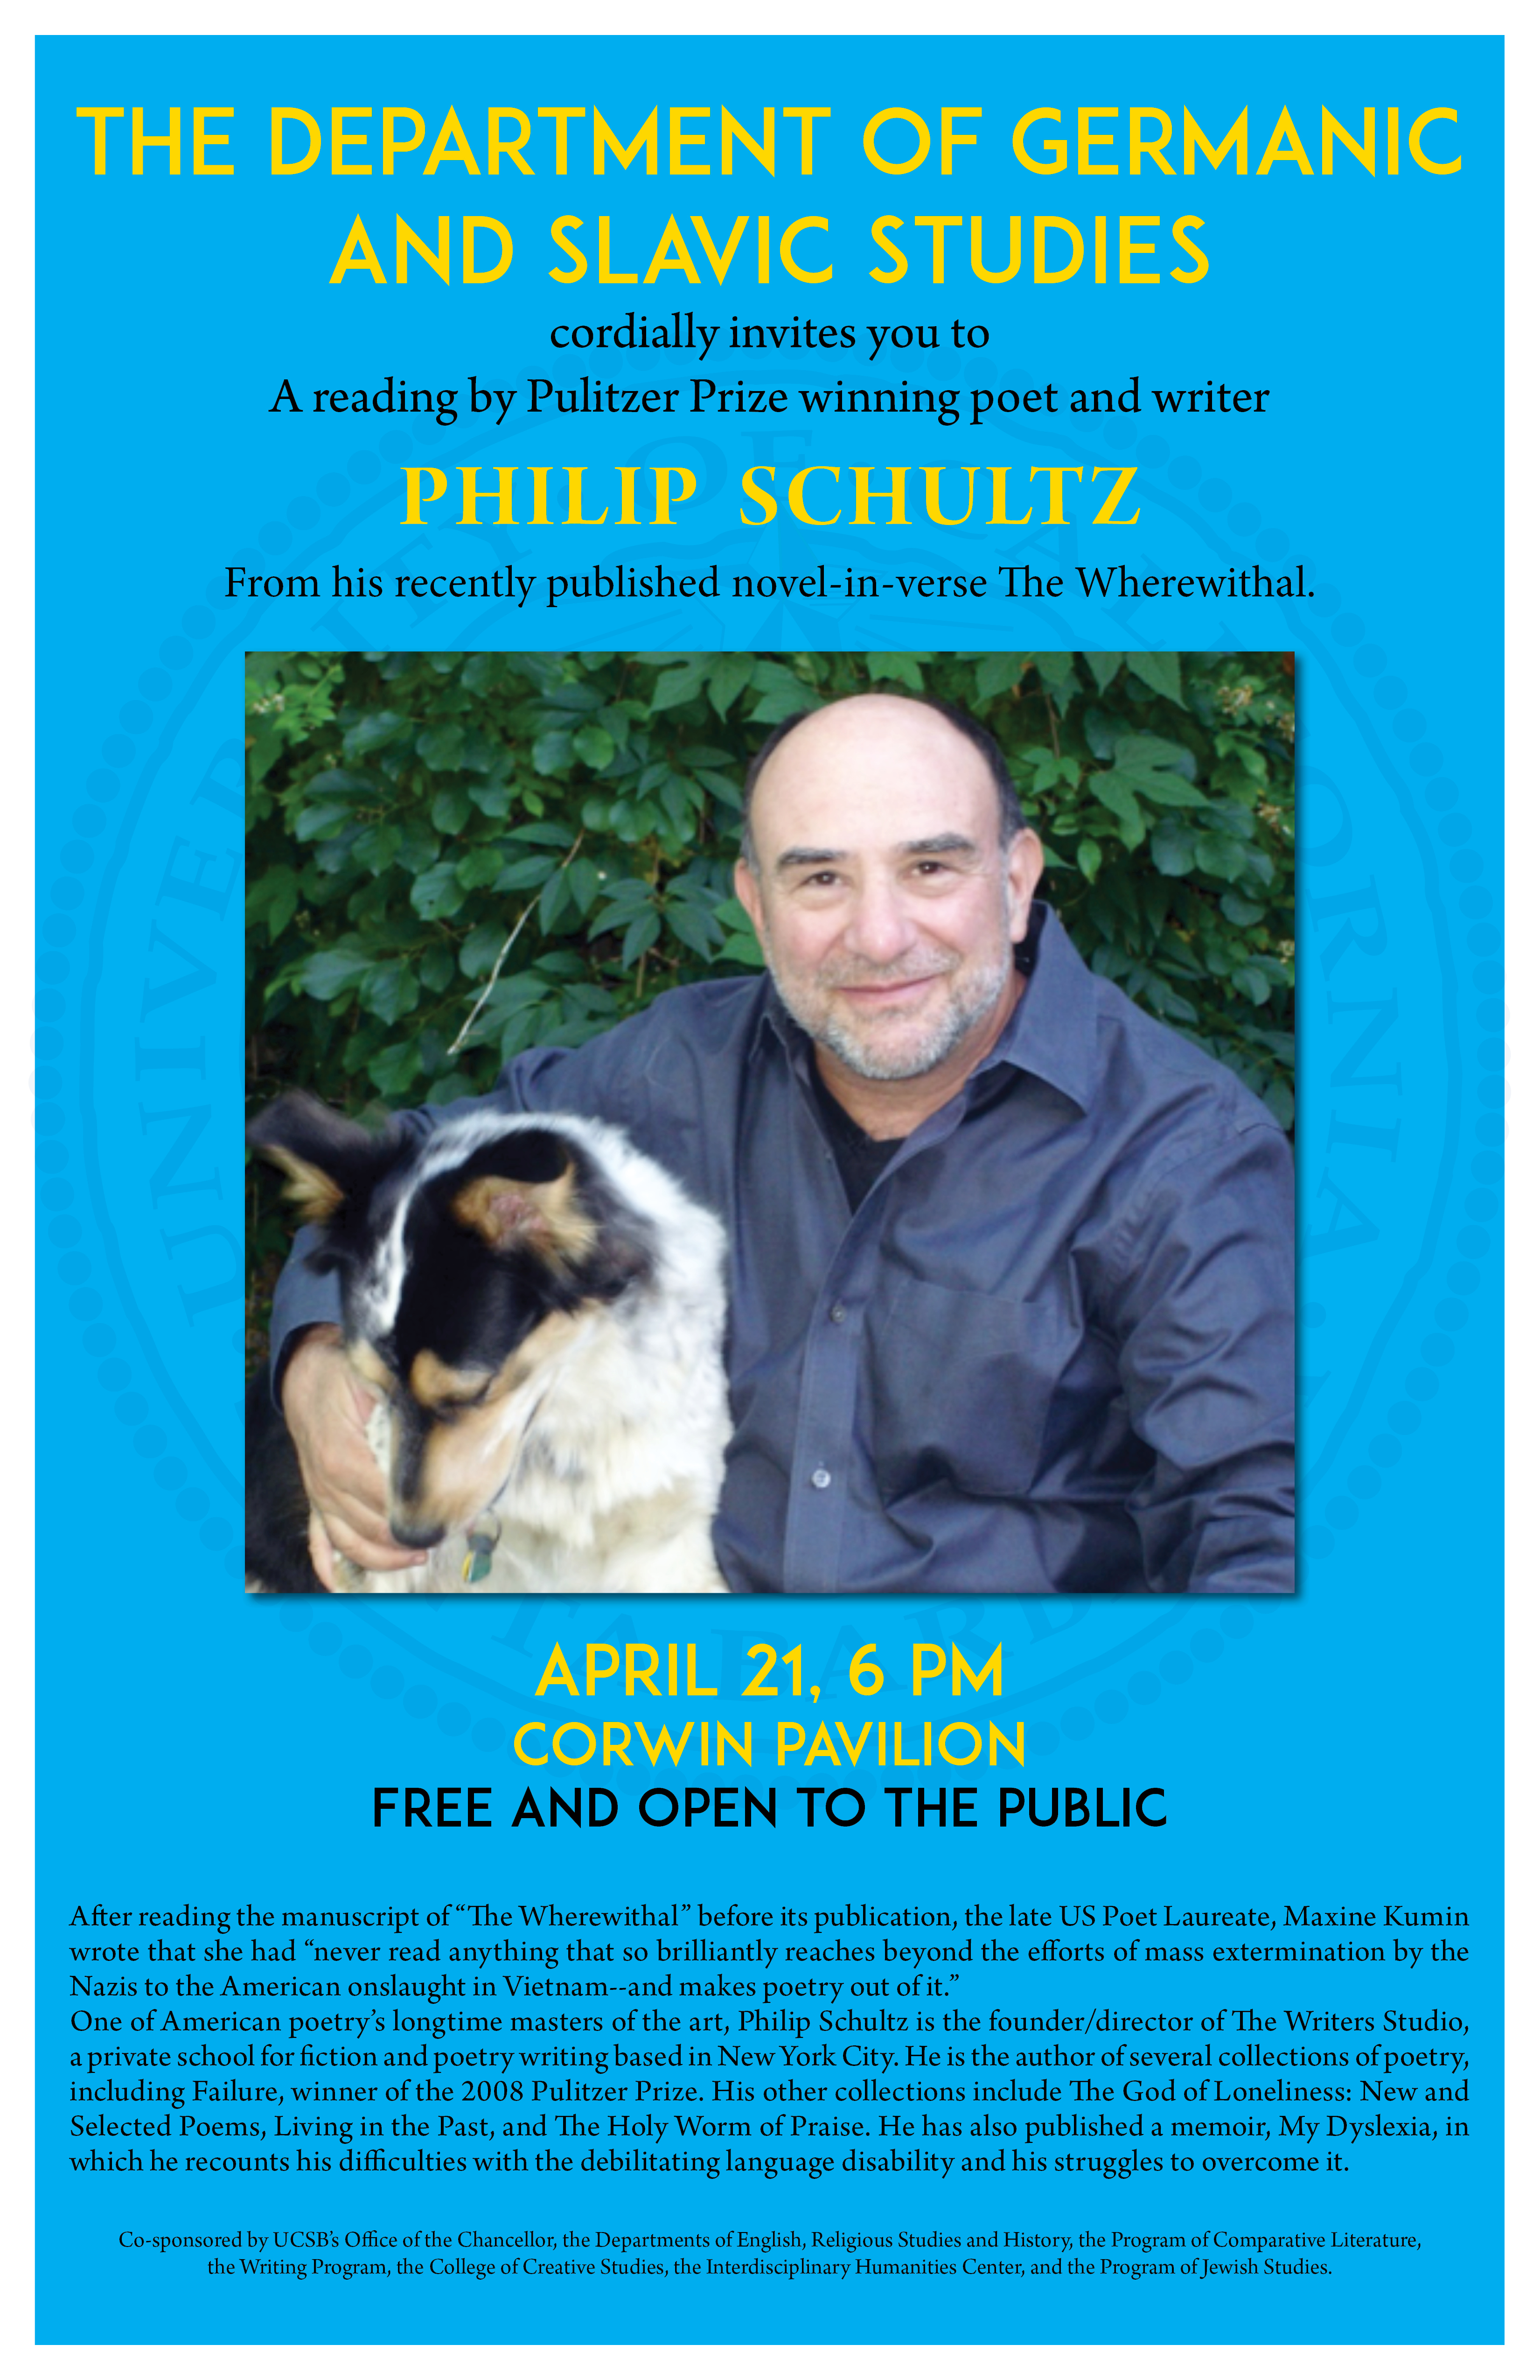 Reading by Pulitzer Prize-winning poet Philip Schultz